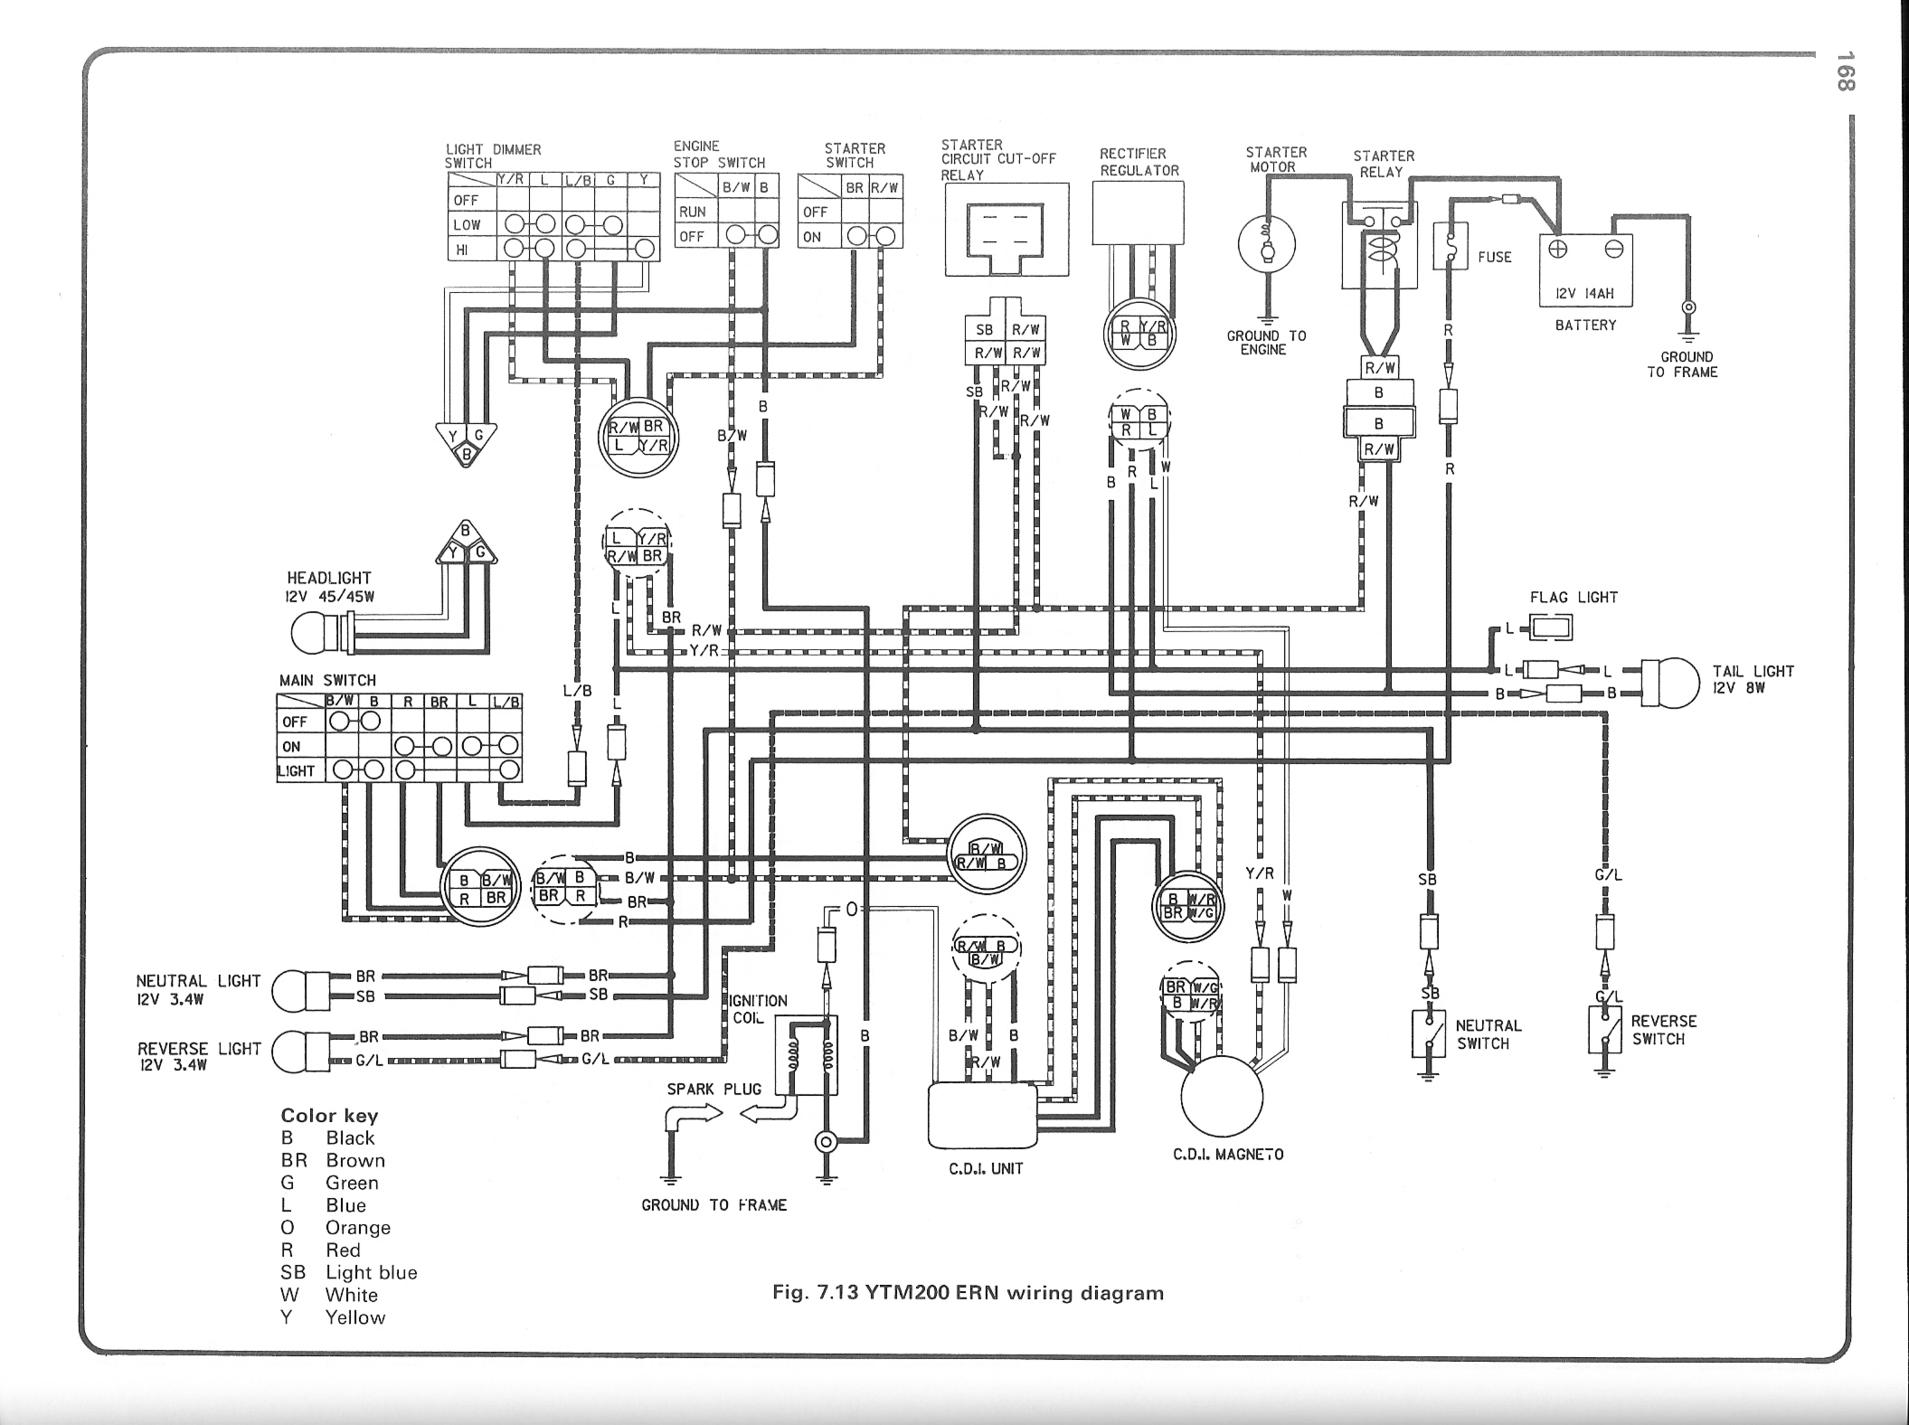 kawasaki prairie 700 wiring diagram 3wheeler world - yamaha ytm200ern three-wheeler wiring diagram kawasaki prairie 650 wiring diagram